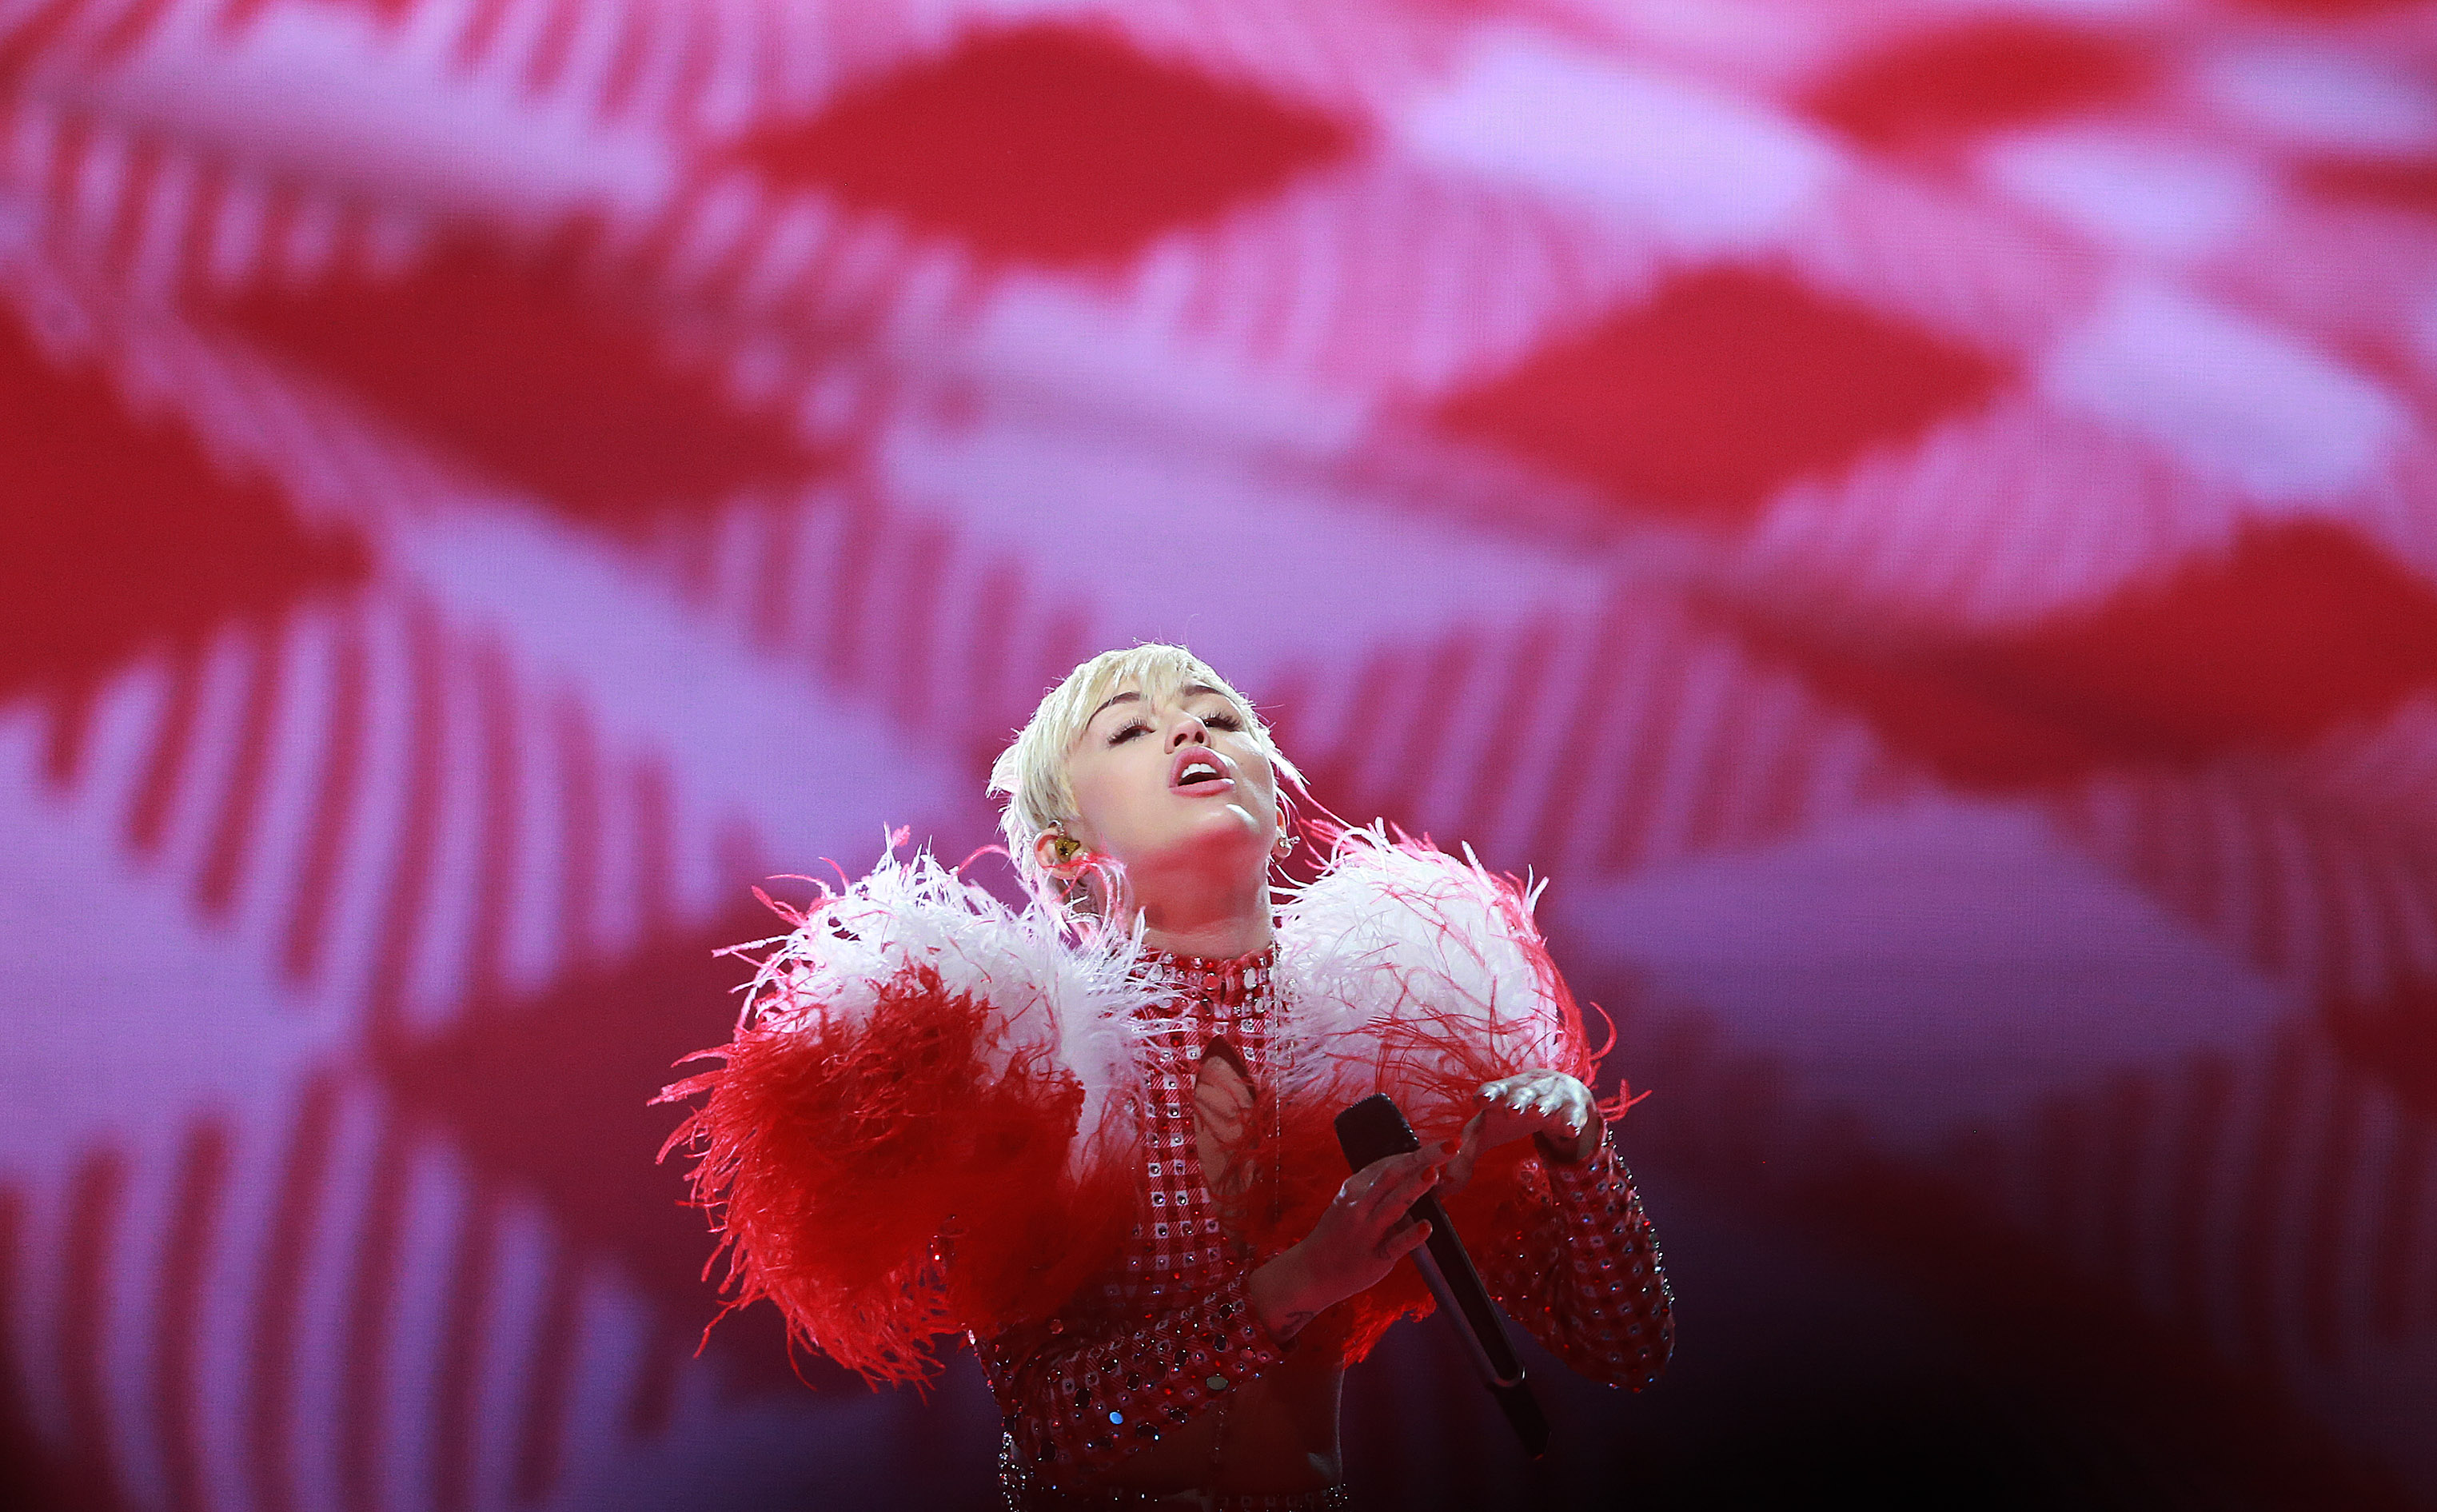 BOSTON - APRIL 2: Miley Cyrus performs live during her concert at TD Garden on April 2, 2014. (Photo by Jim Davis/The Boston